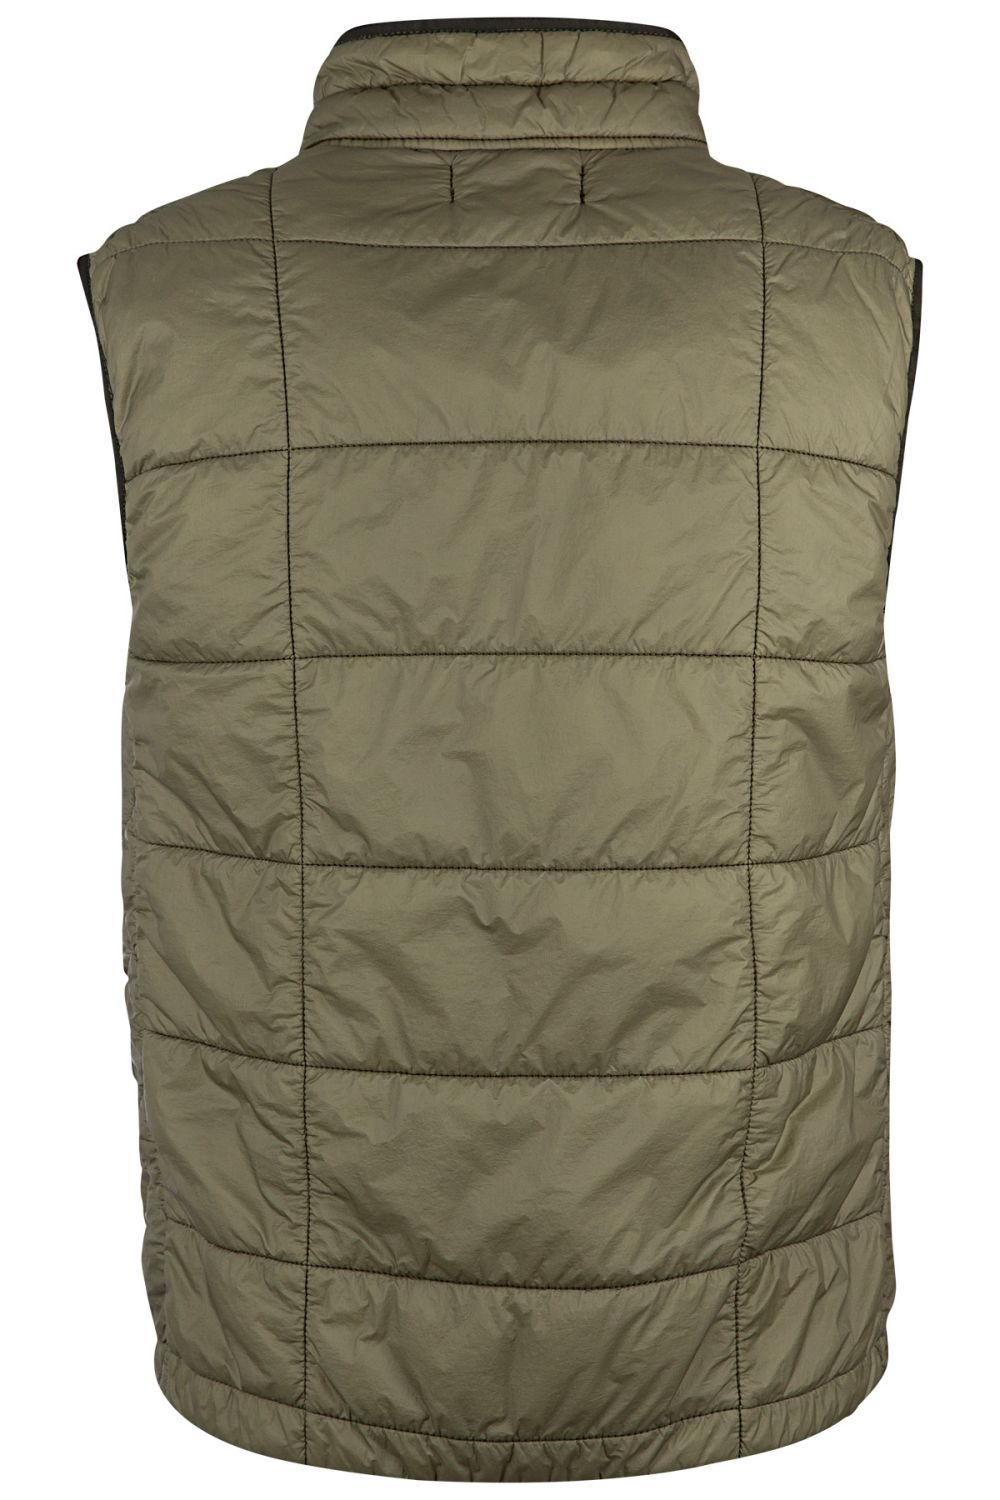 Stone Island Herren Steppweste Garment Dyed Quilted Micro Yarn Olive 4